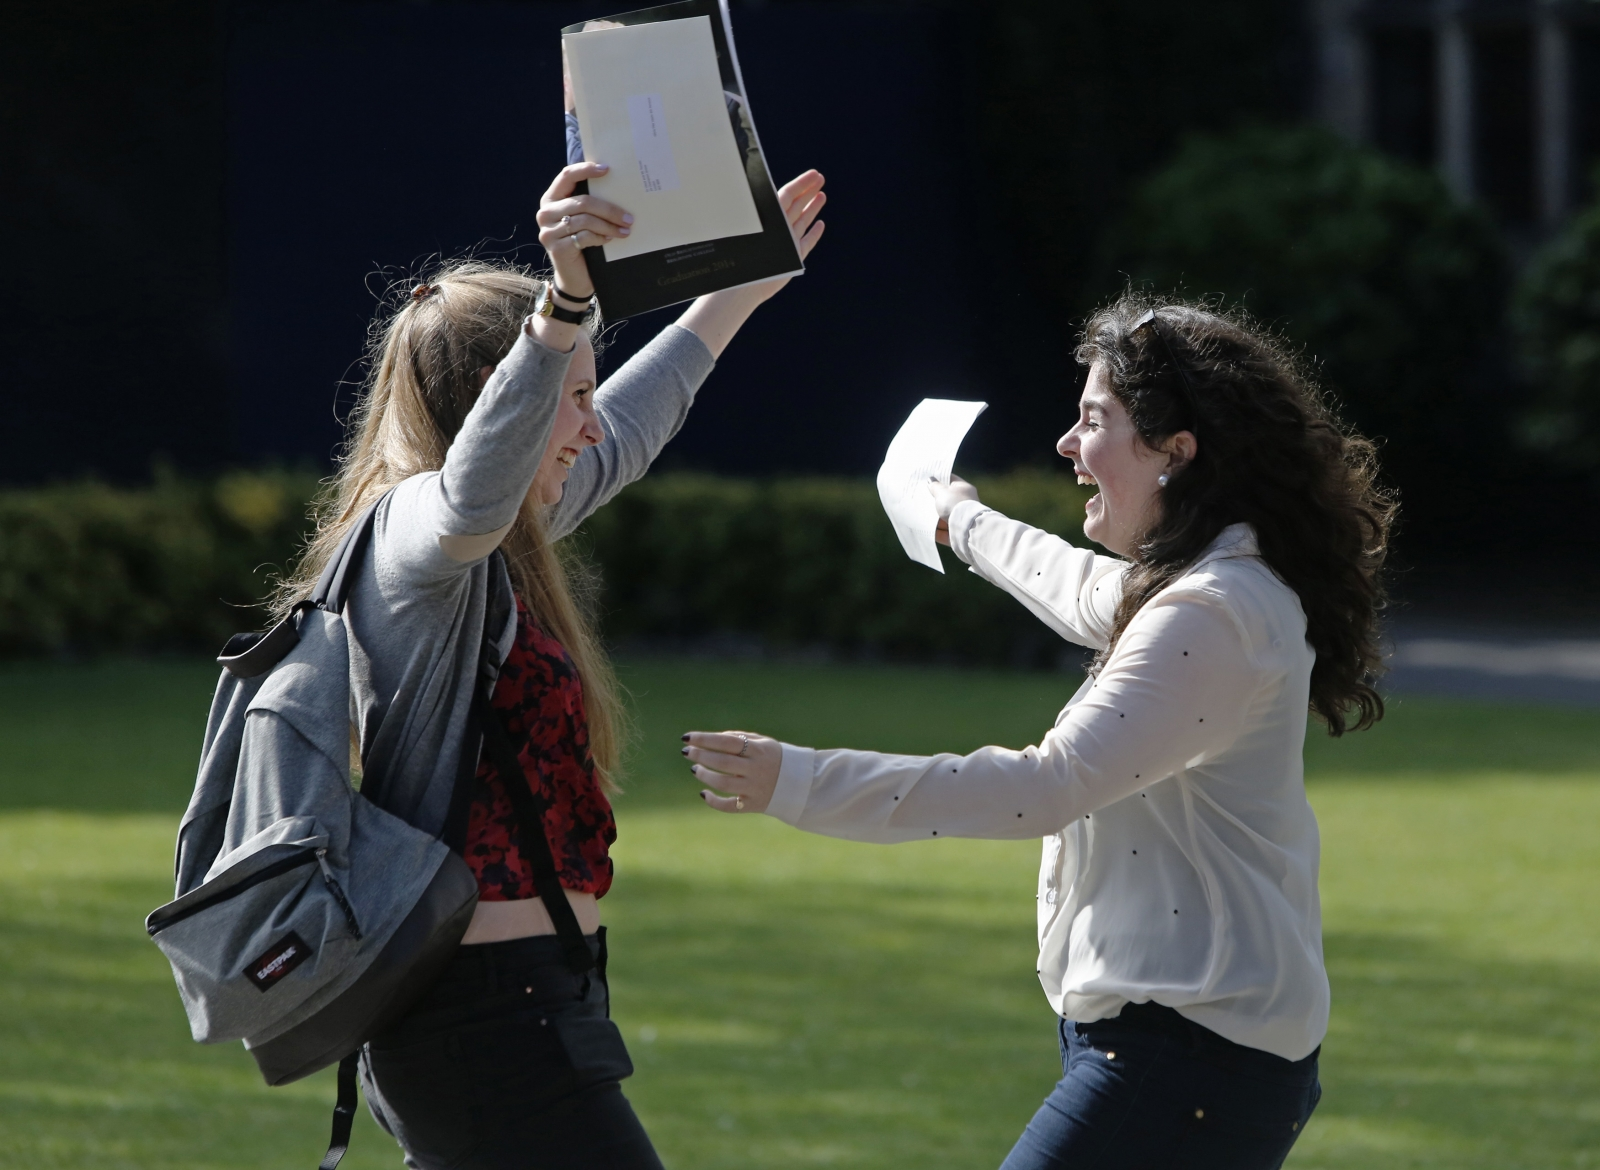 Is it a good idea to resit GCSE Science privately alongside 4 A-levels?